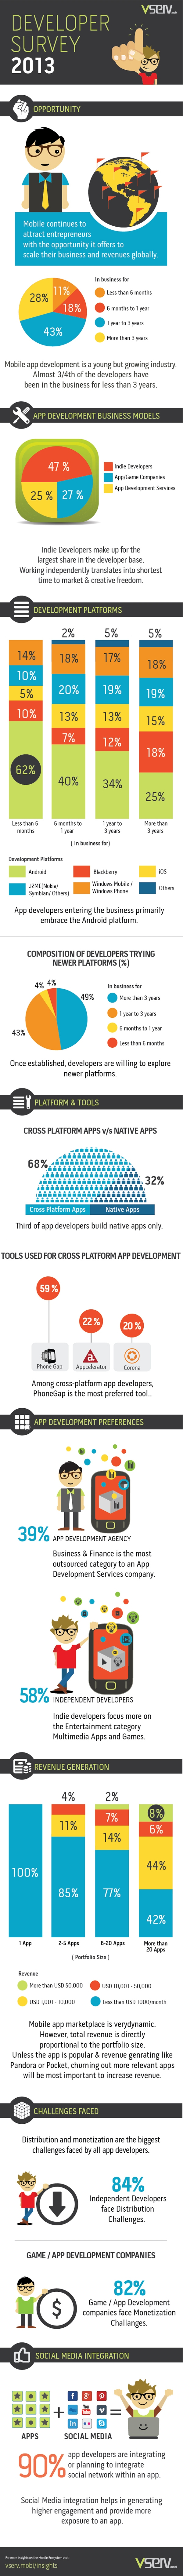 App Developer Survey Infographic